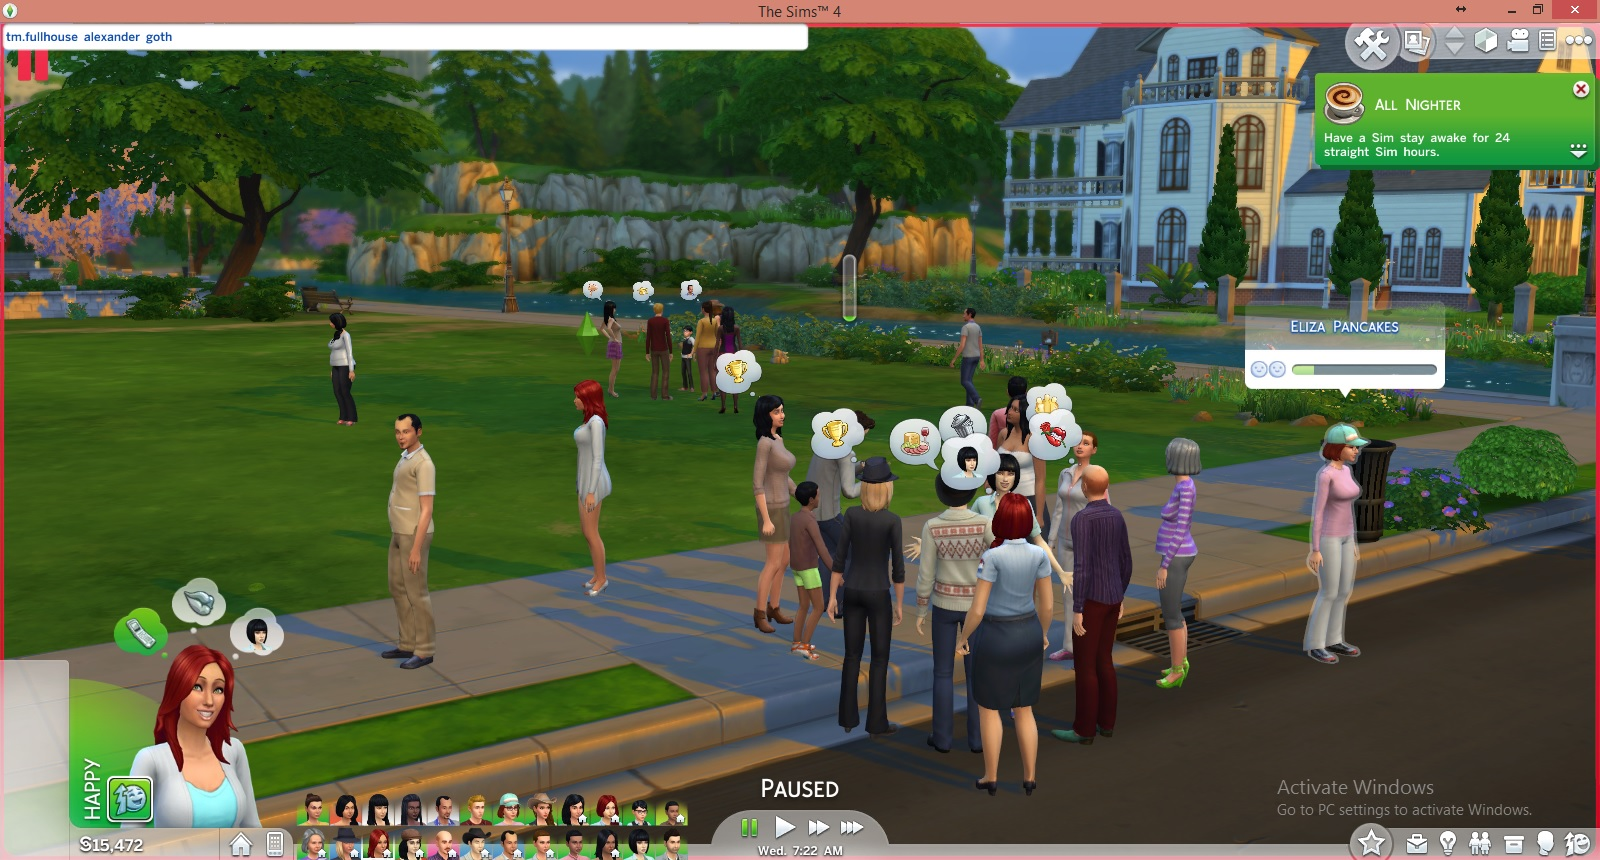 Mod The Sims - Full House Mod - Increase your Household Size! [Still